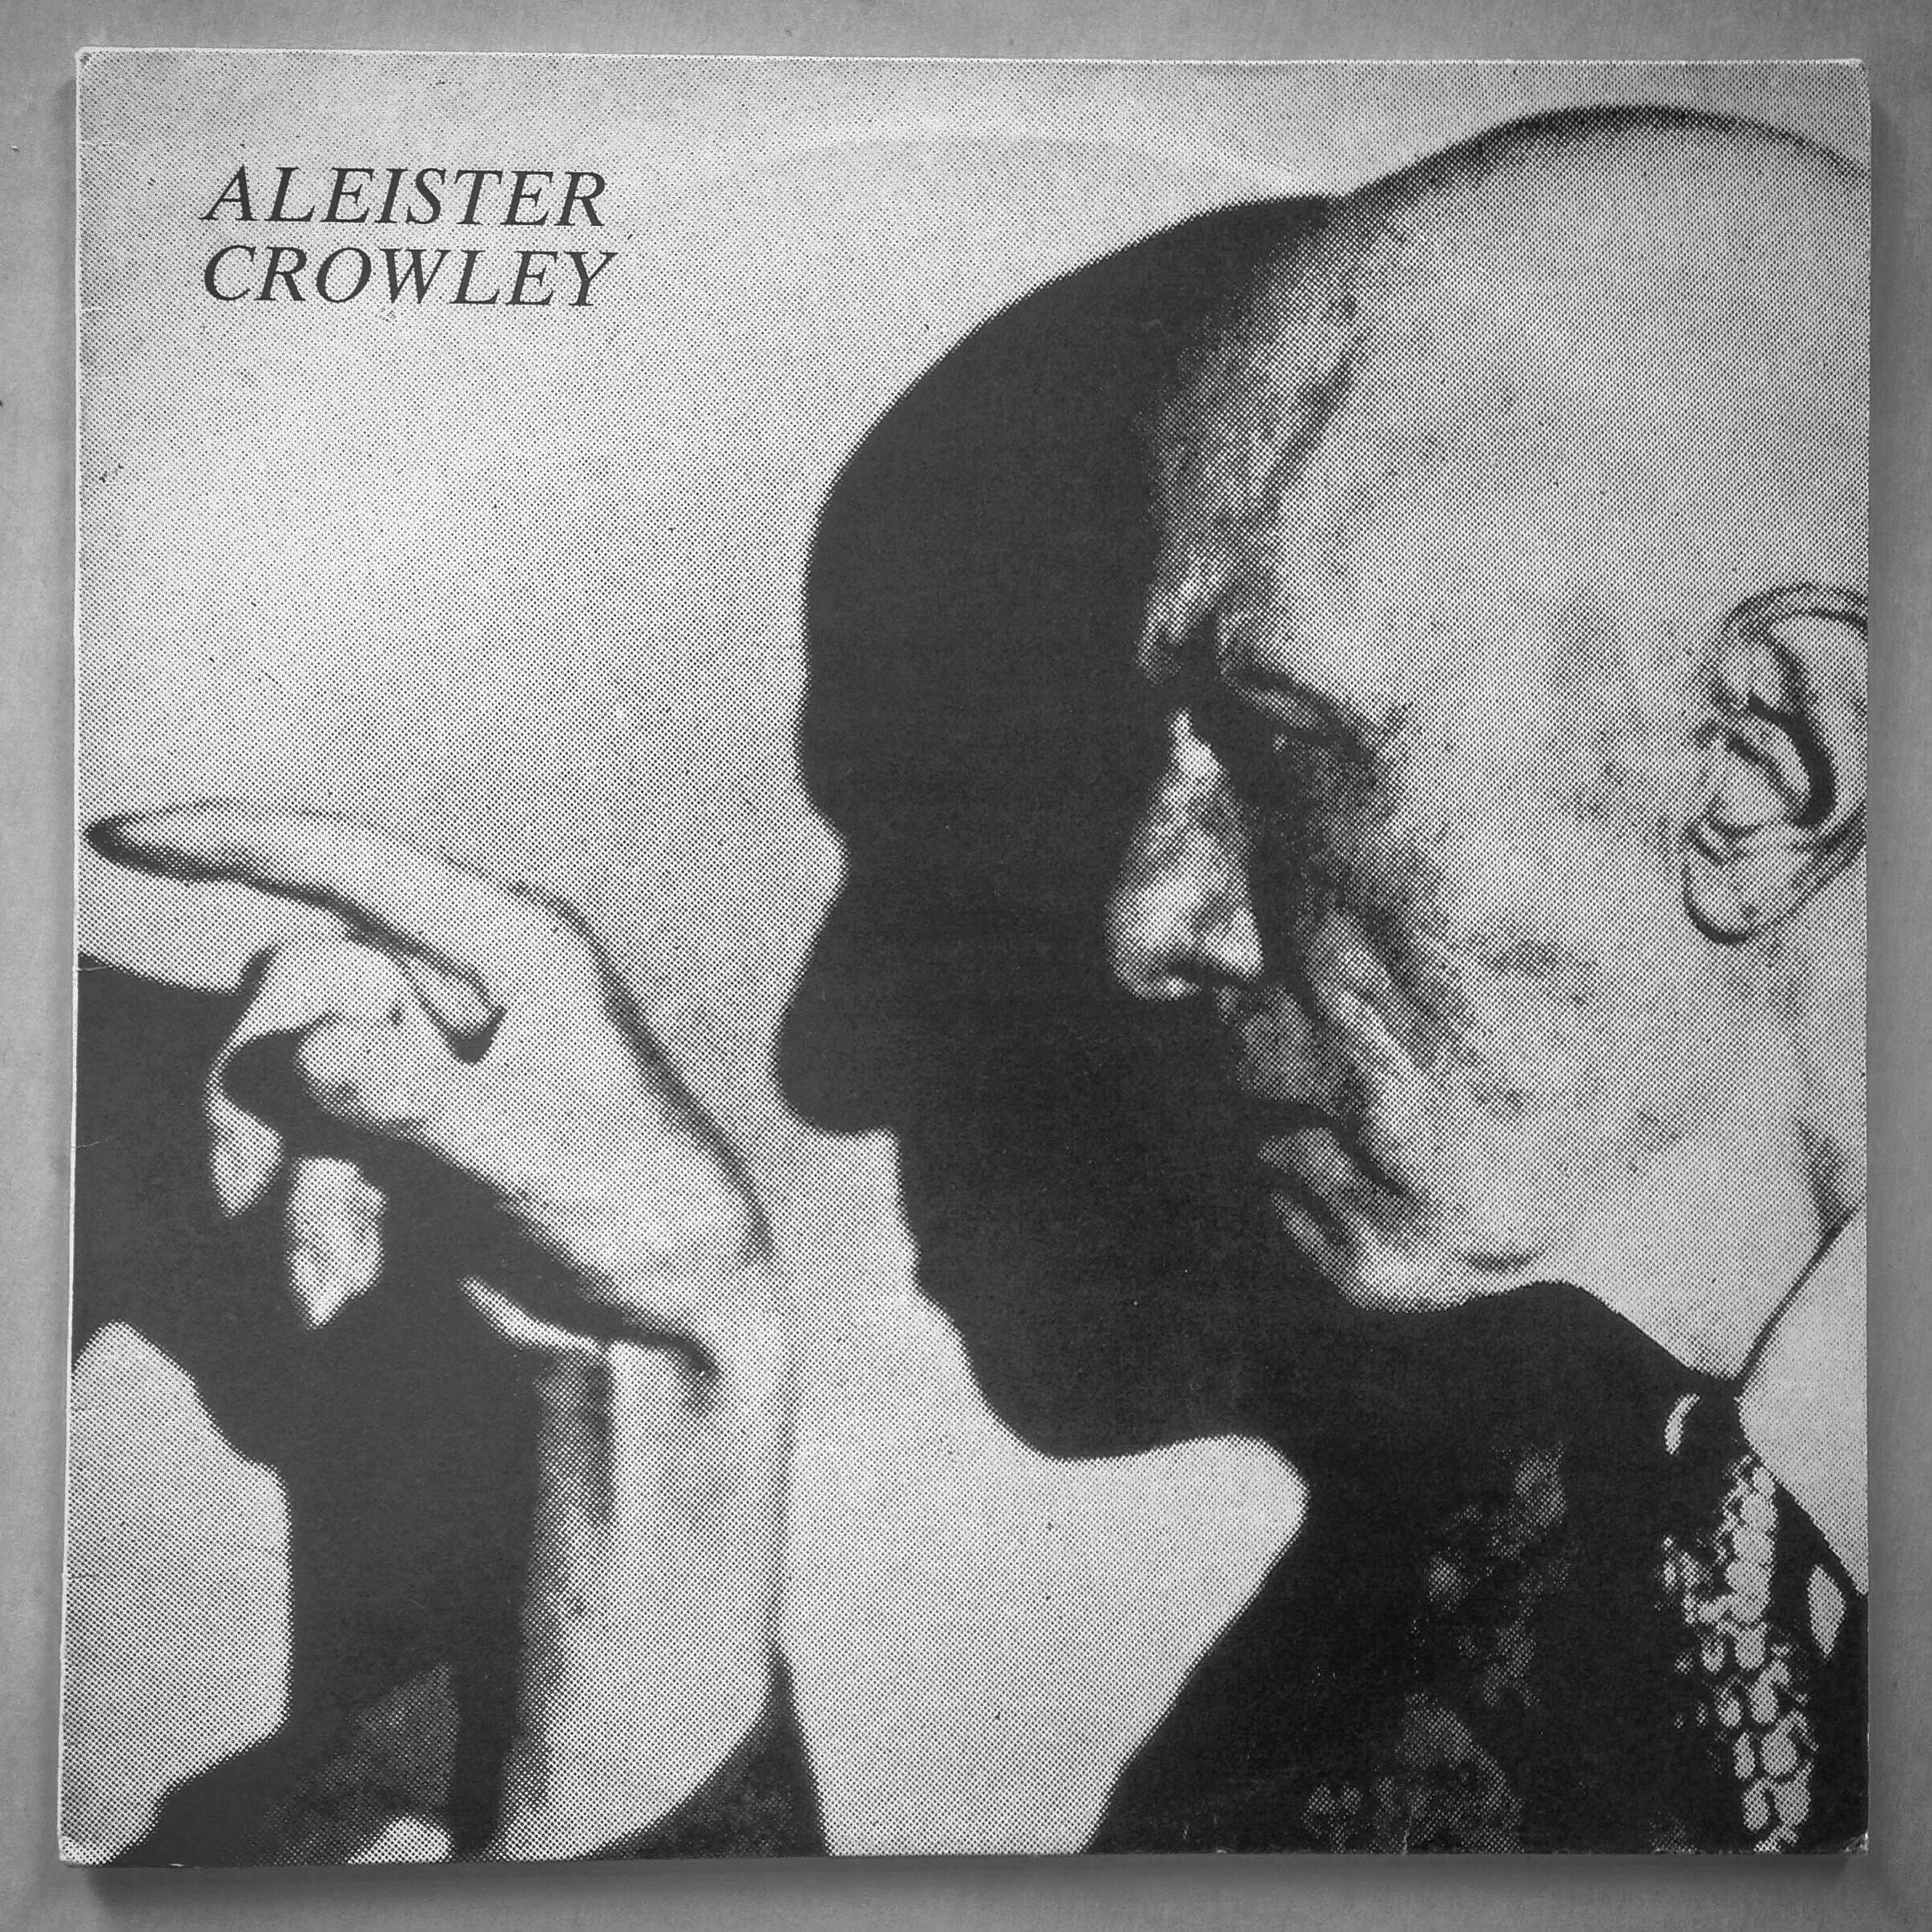 ALEISTER CROWLEY OZ 77 LP